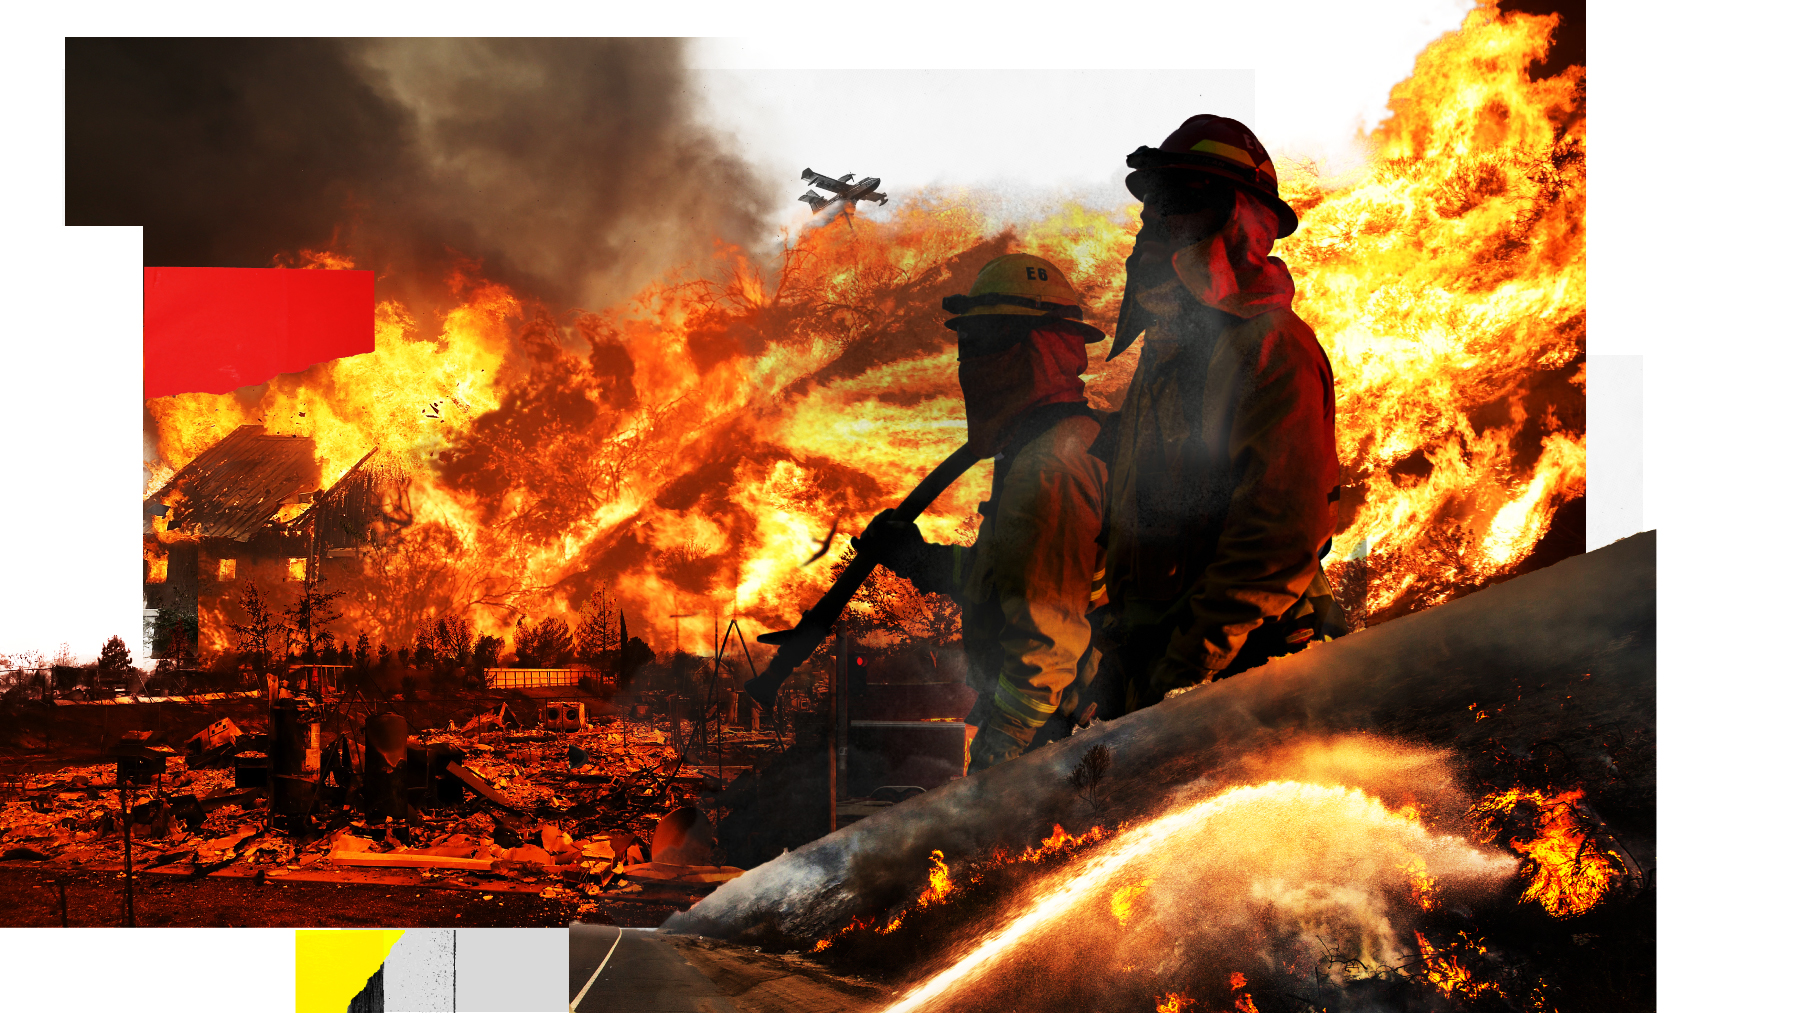 This is a worst-possible wildfire scenario for Southern California